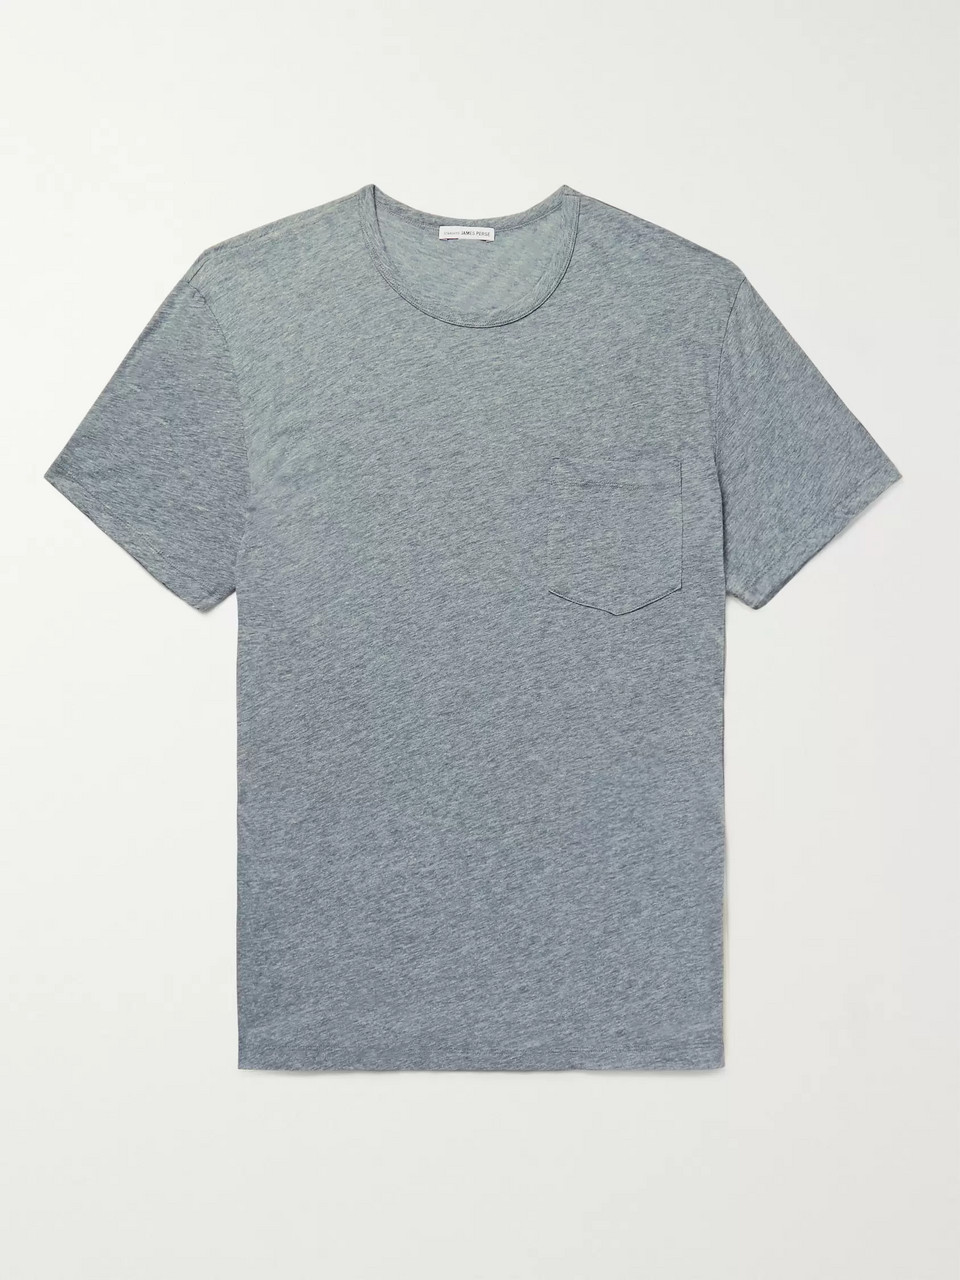 James Perse Mélange Cotton-Blend Jersey T-Shirt